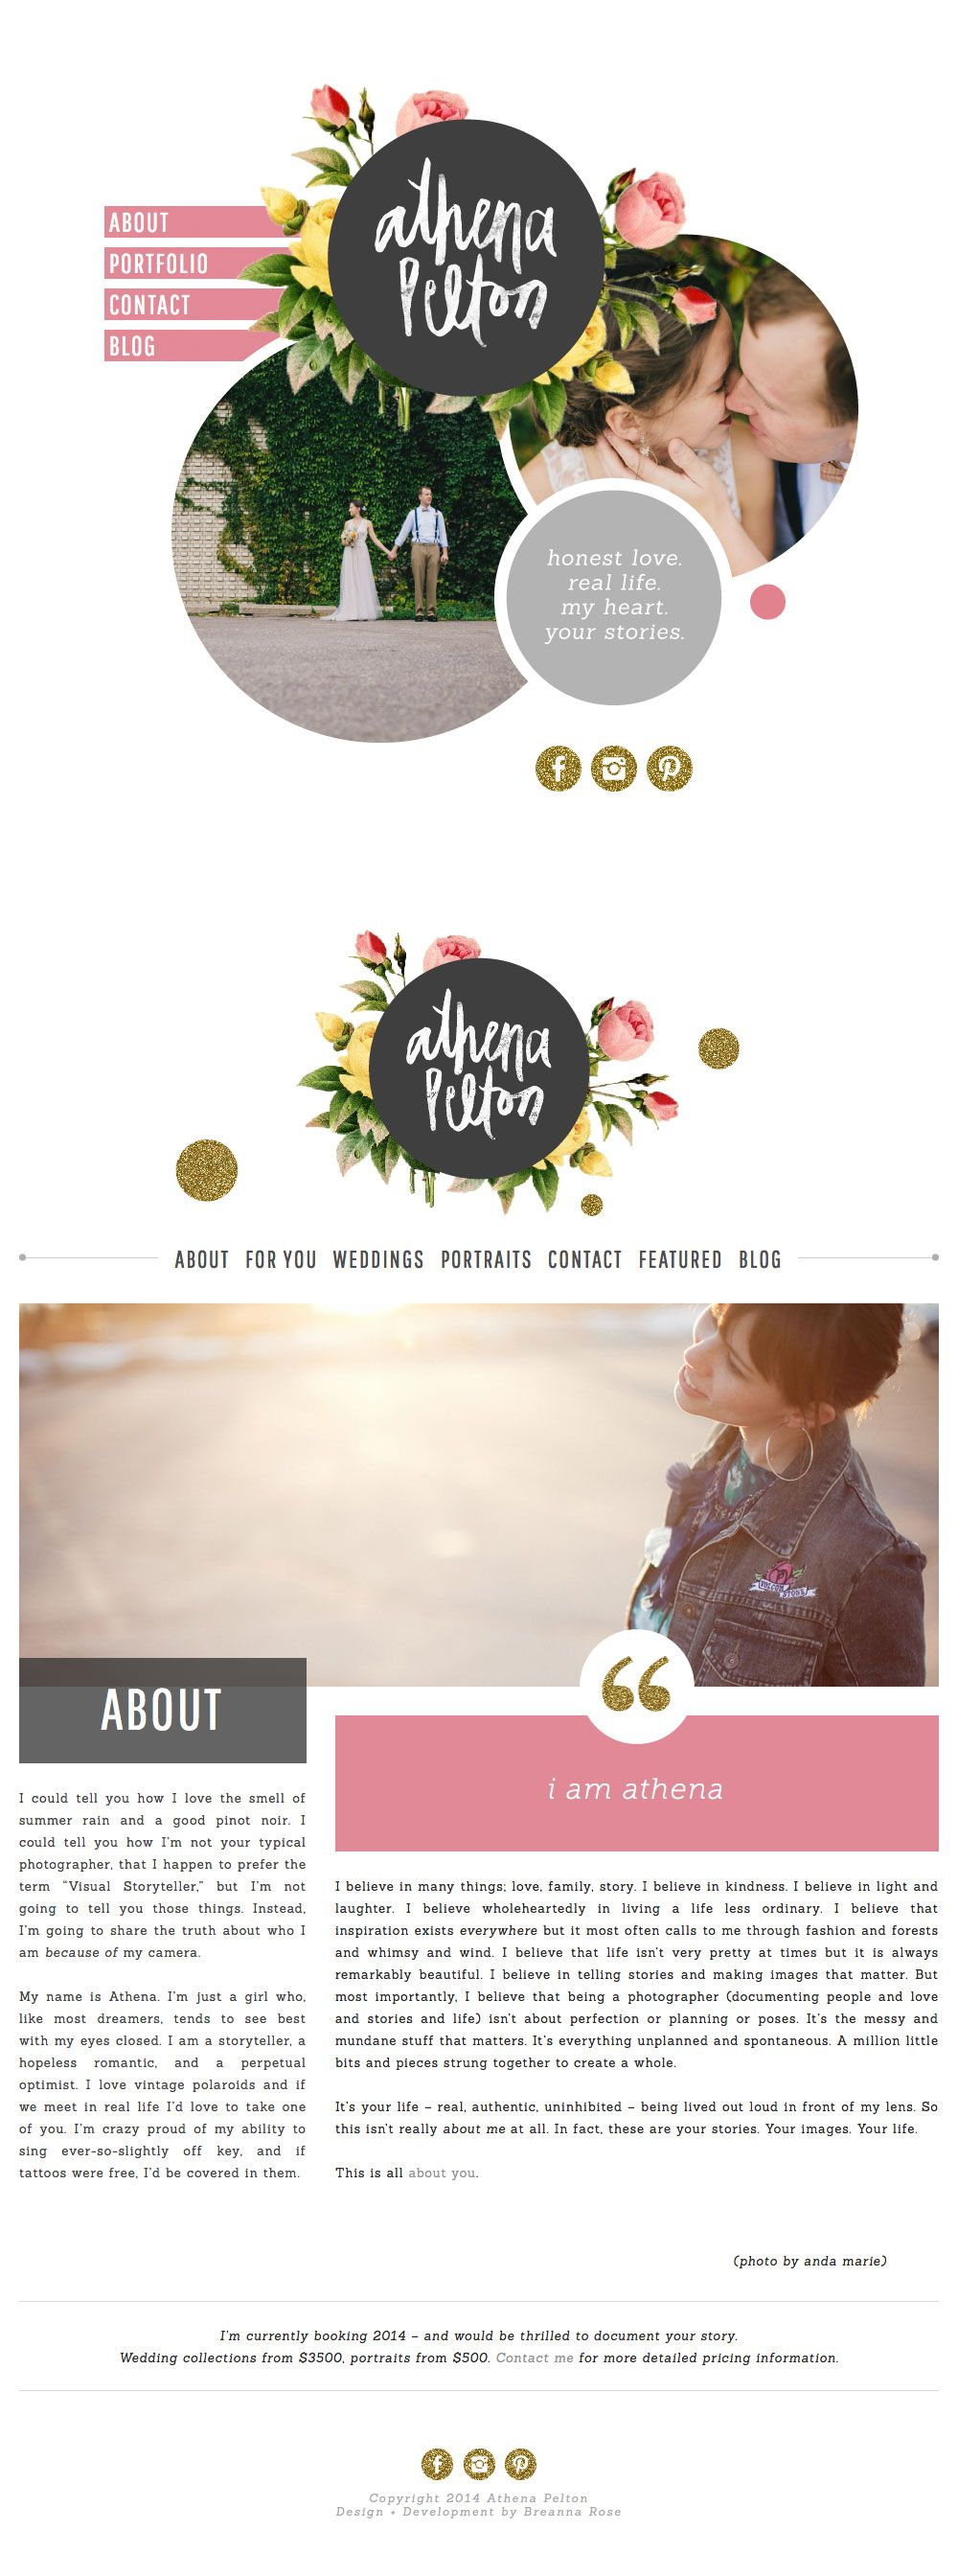 Athena pelton website design inspiration love the logo and style